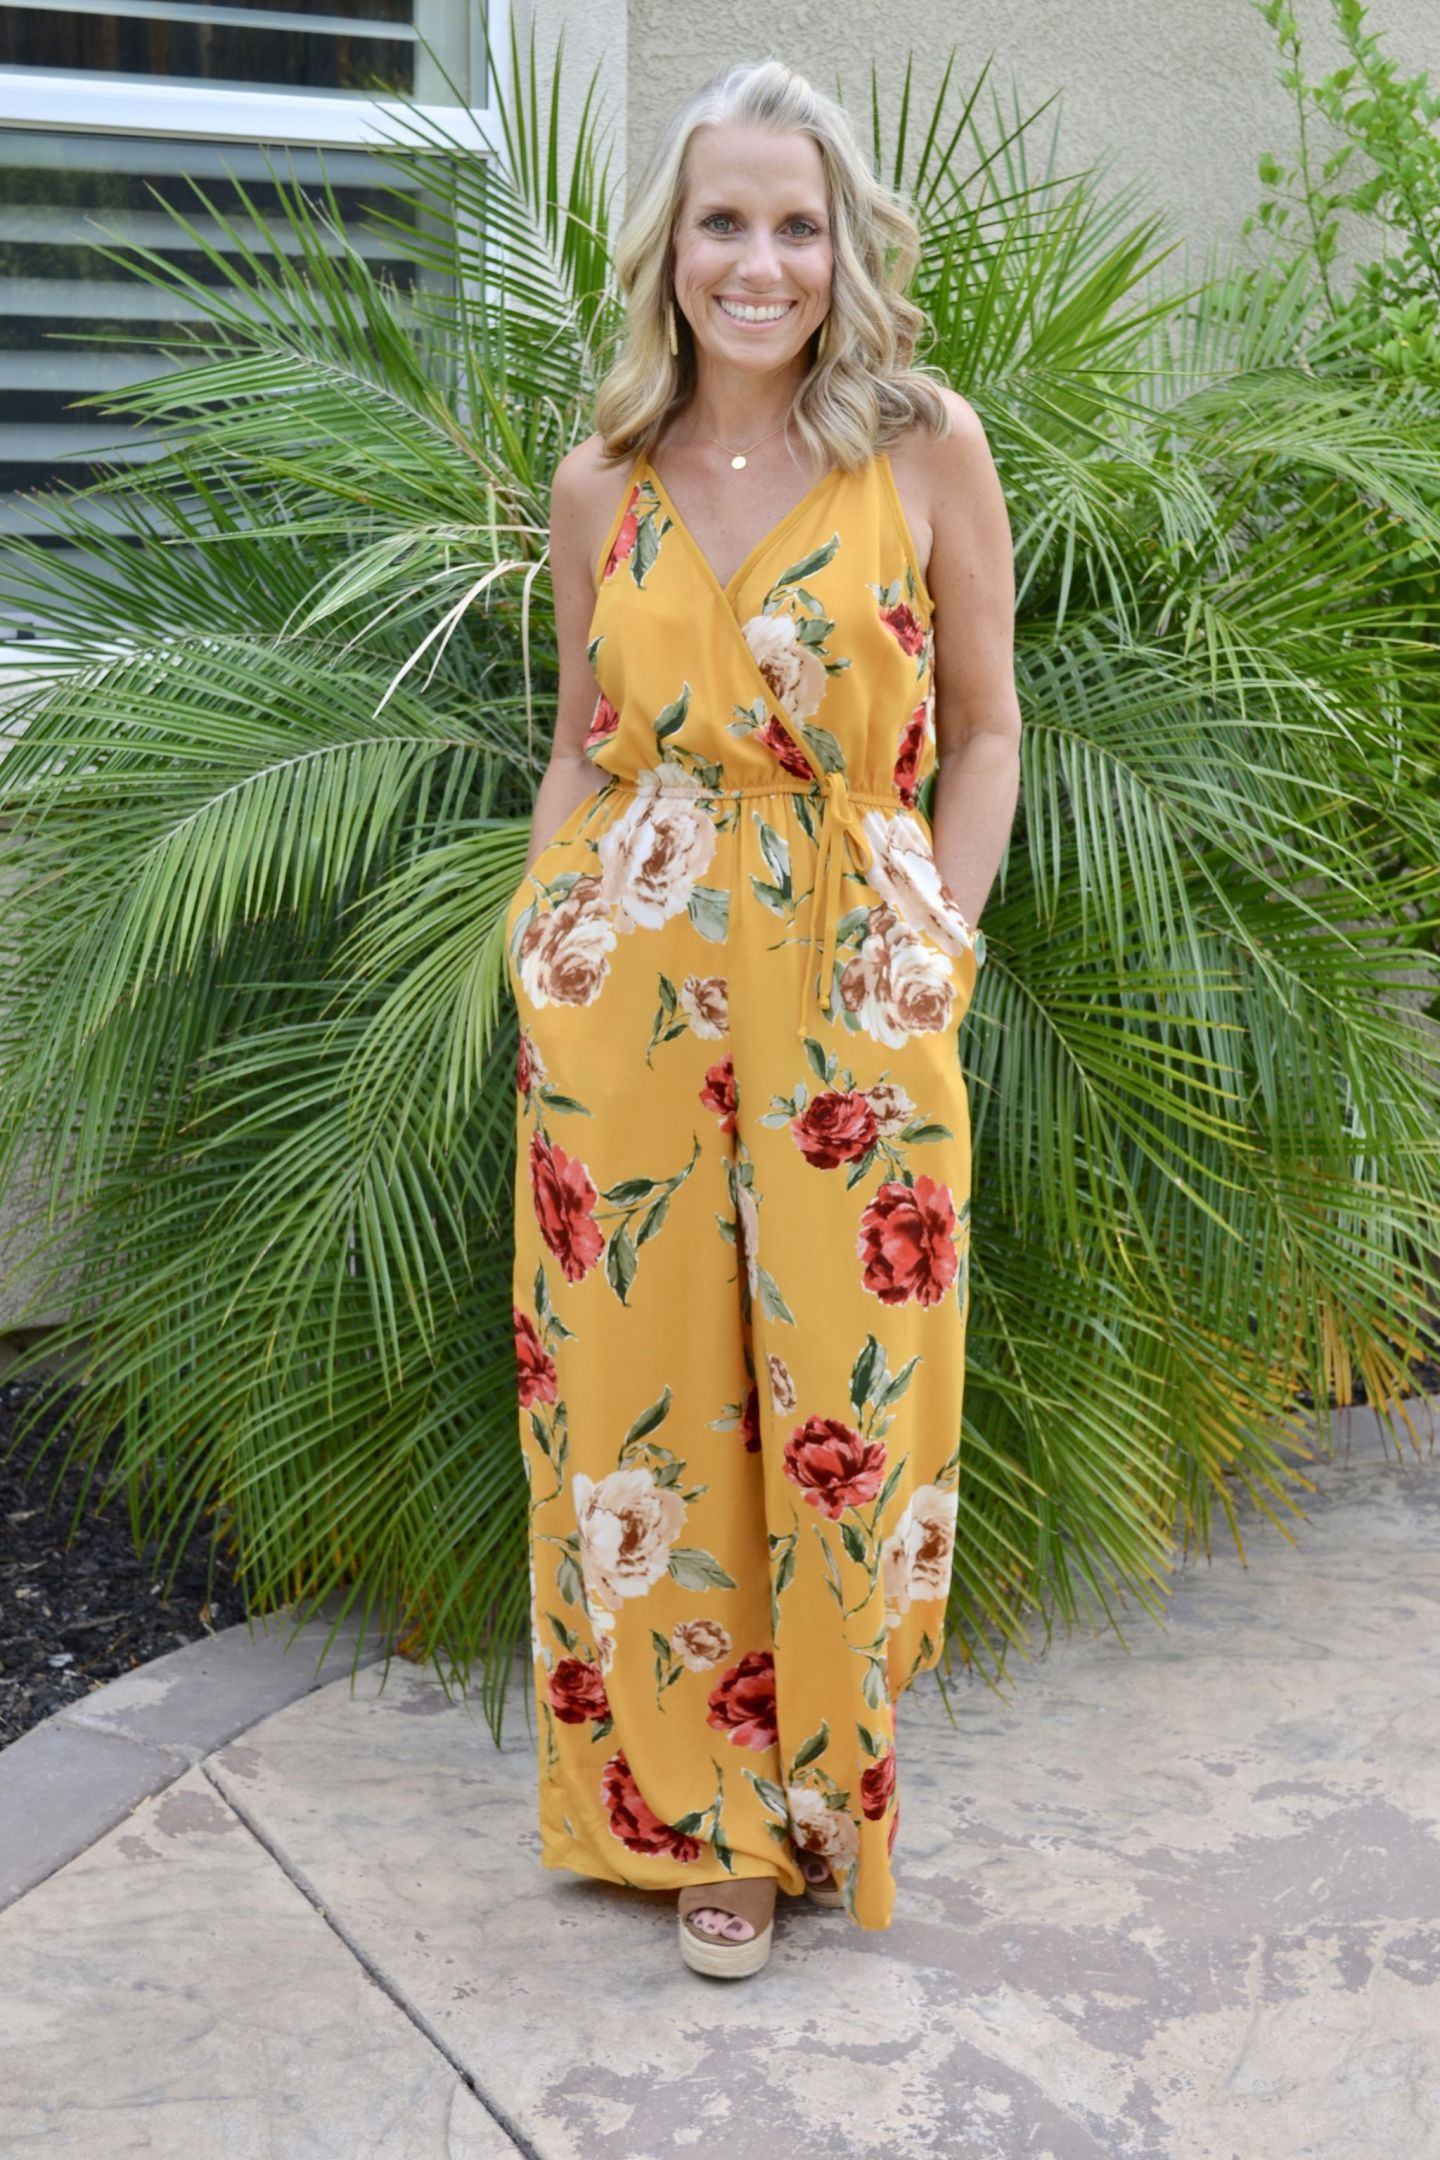 Floral and Tropical with Ageless Style